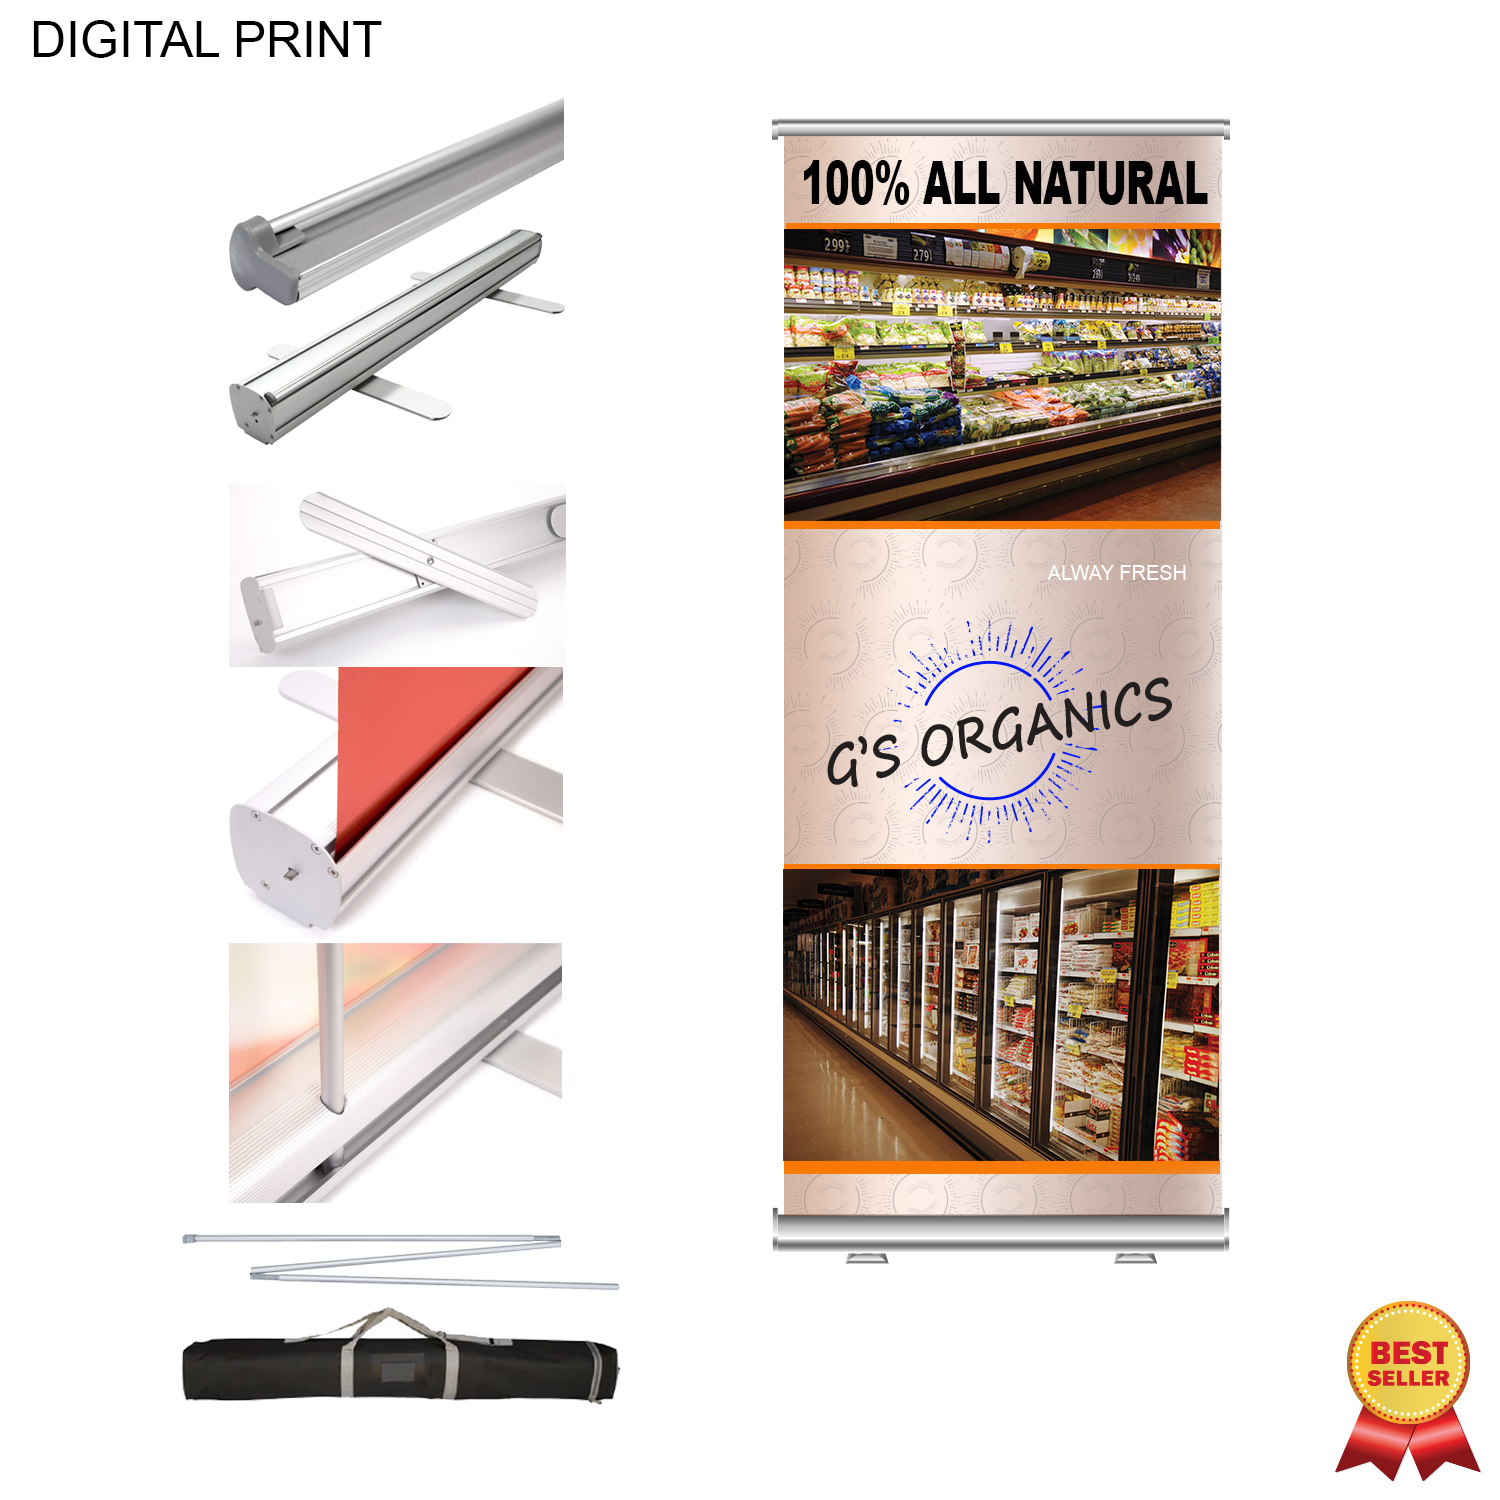 Premium Banner with Stand and Bag, 33.5x79, DP583, Full Colour Imprint